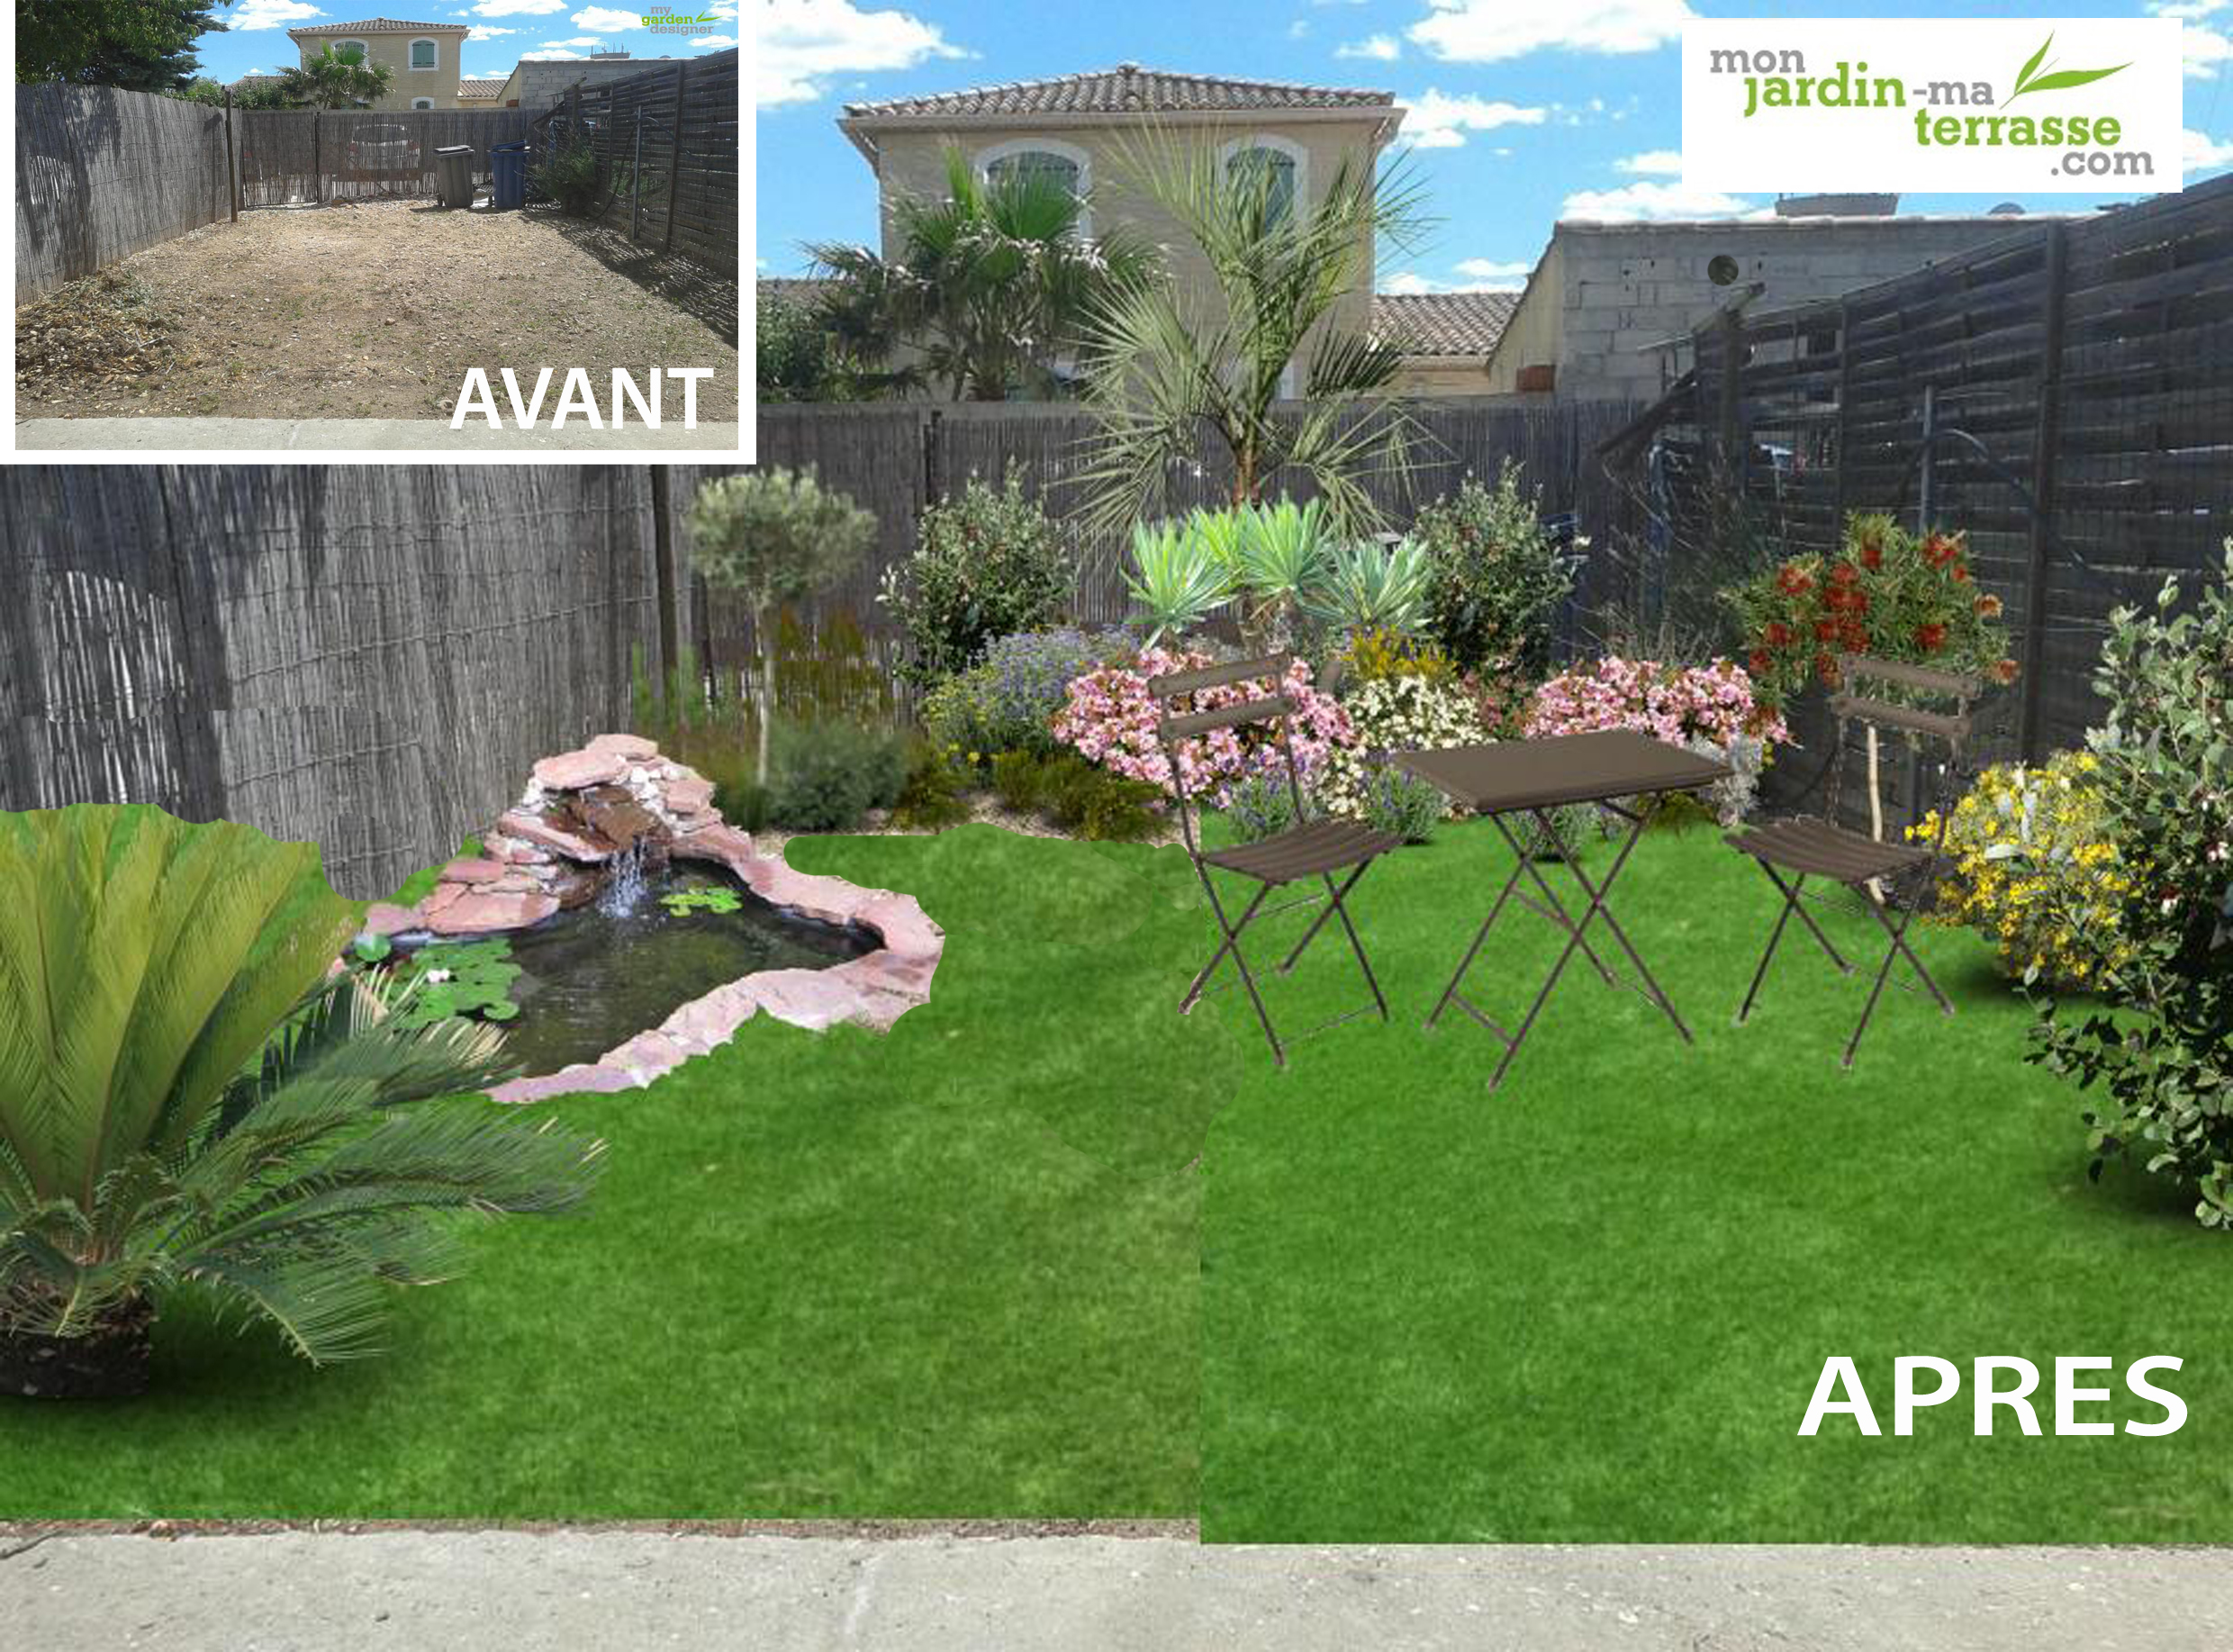 Id e d am nagement d un petit jardin monjardin for Idee amenagement de jardin